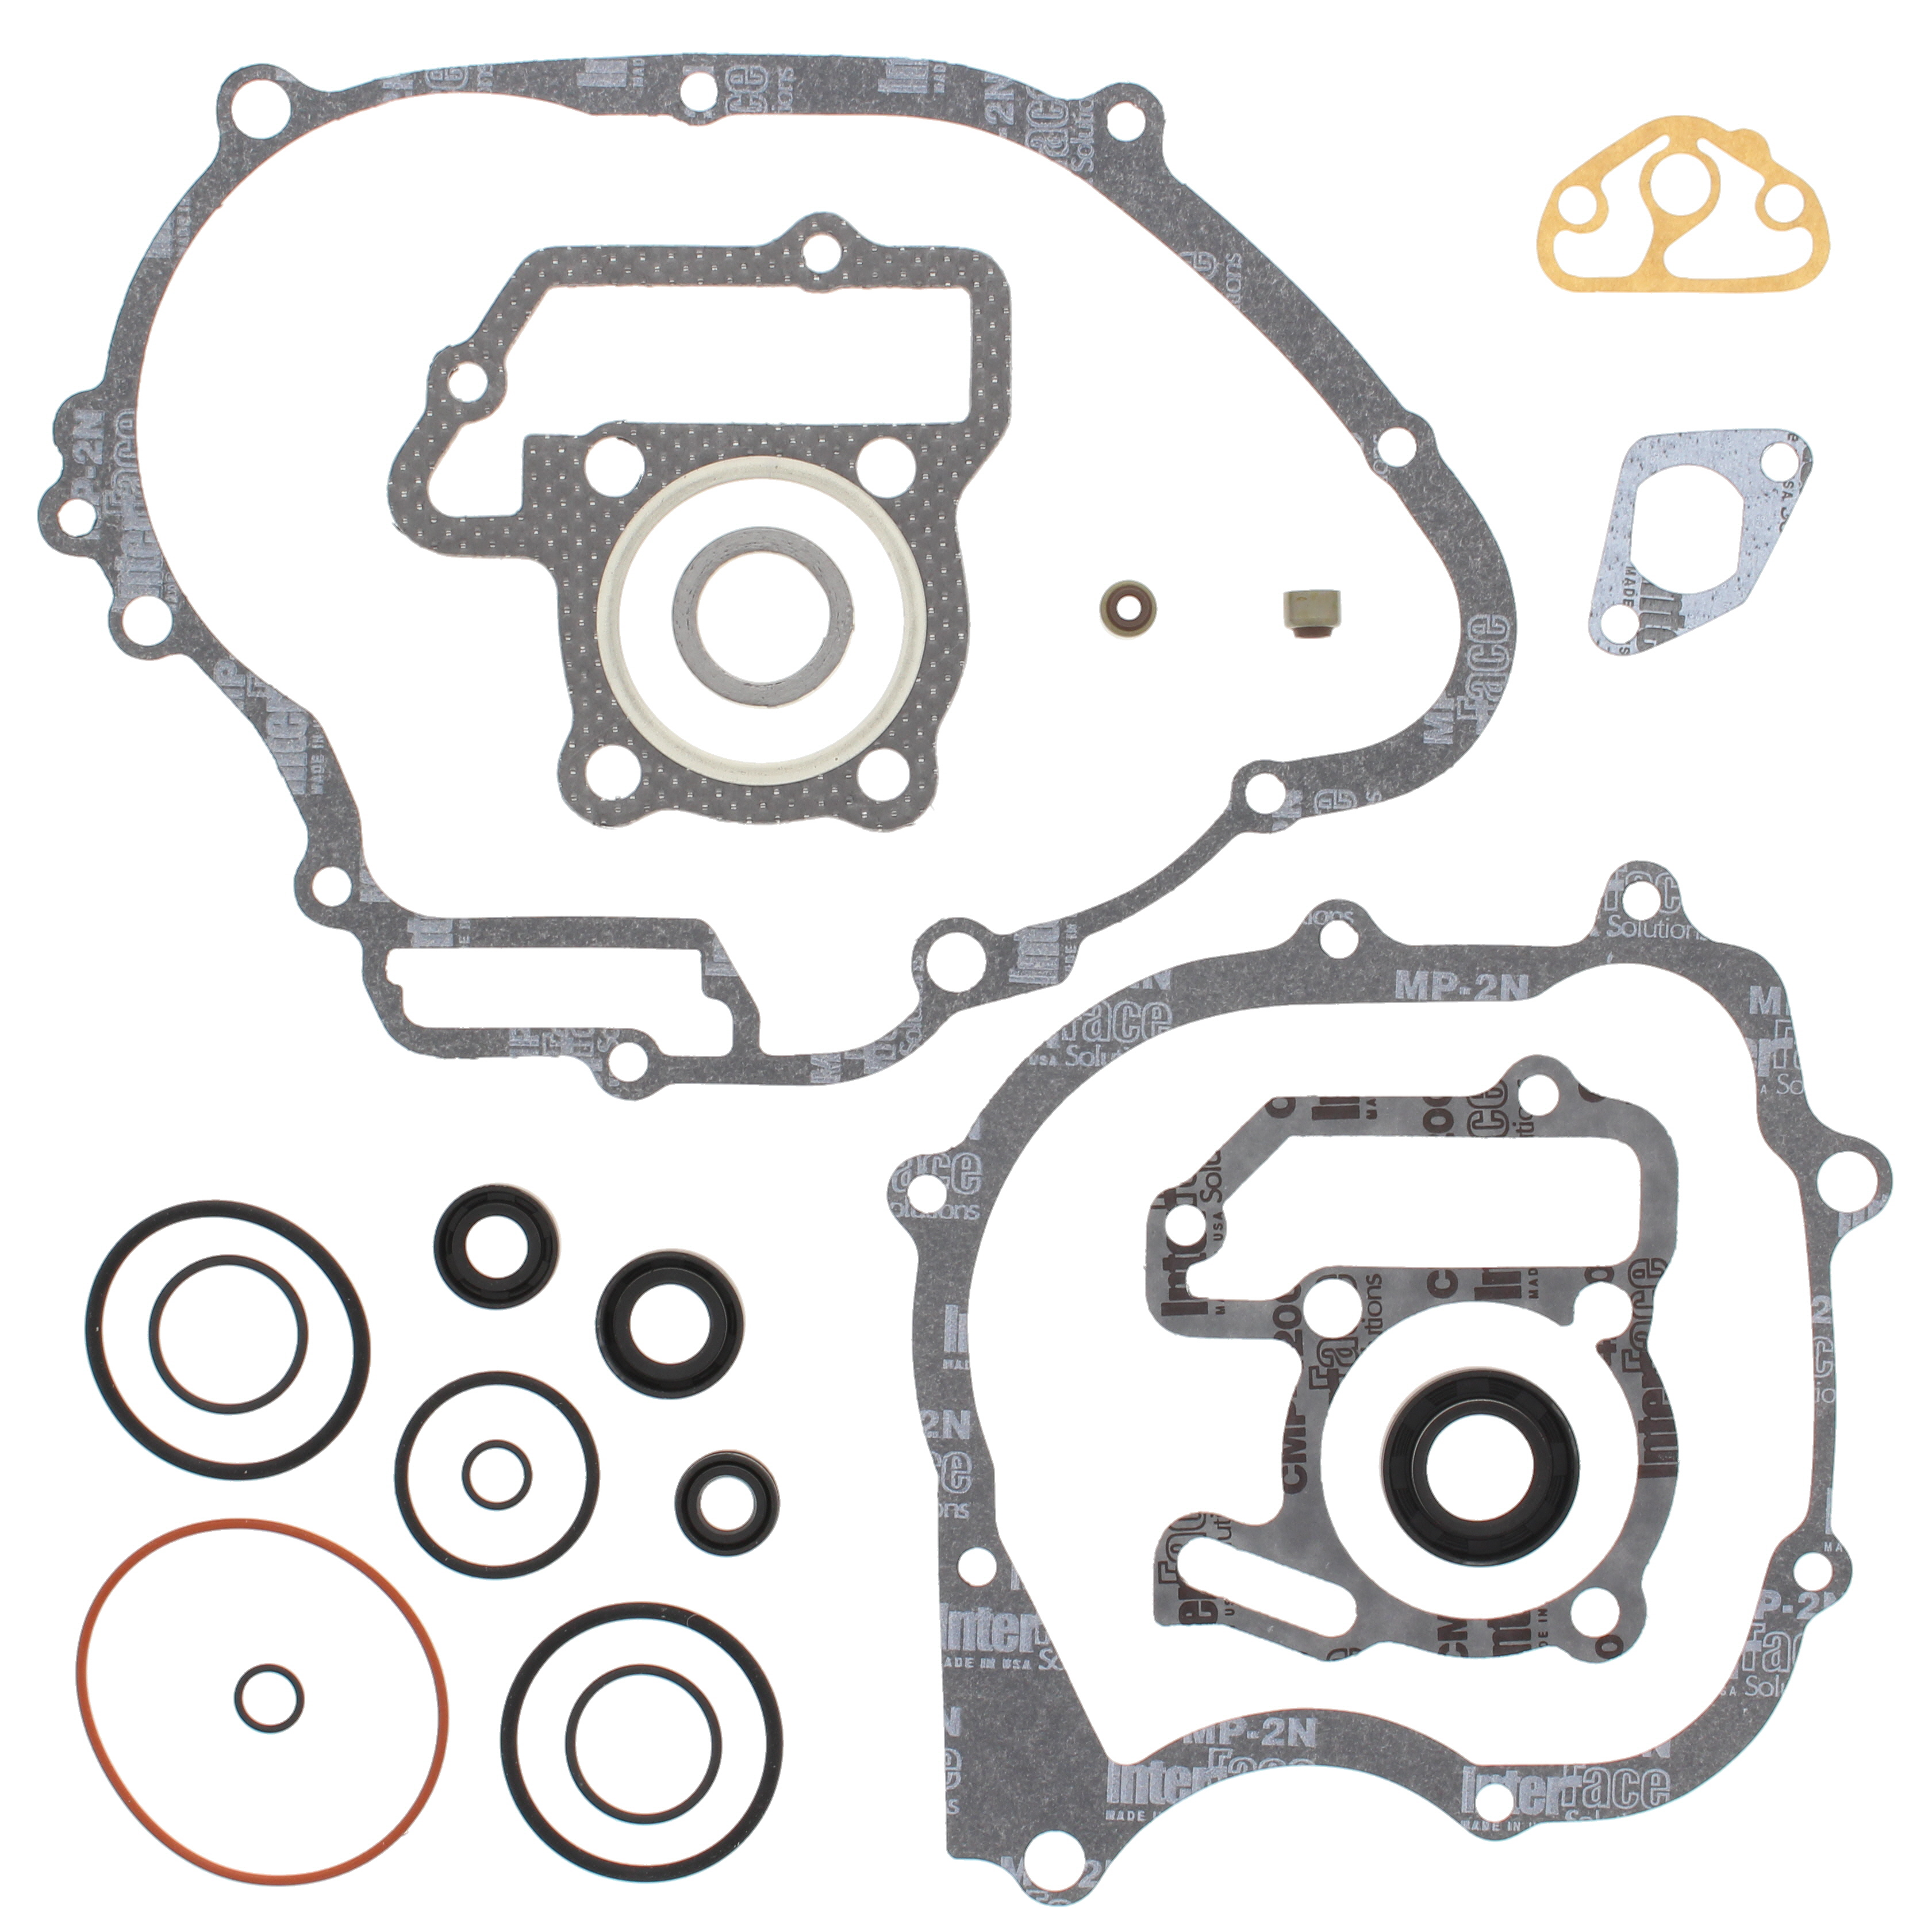 New Ignition Cover Gasket Yamaha TTR90 90cc 00 01 02 03 04